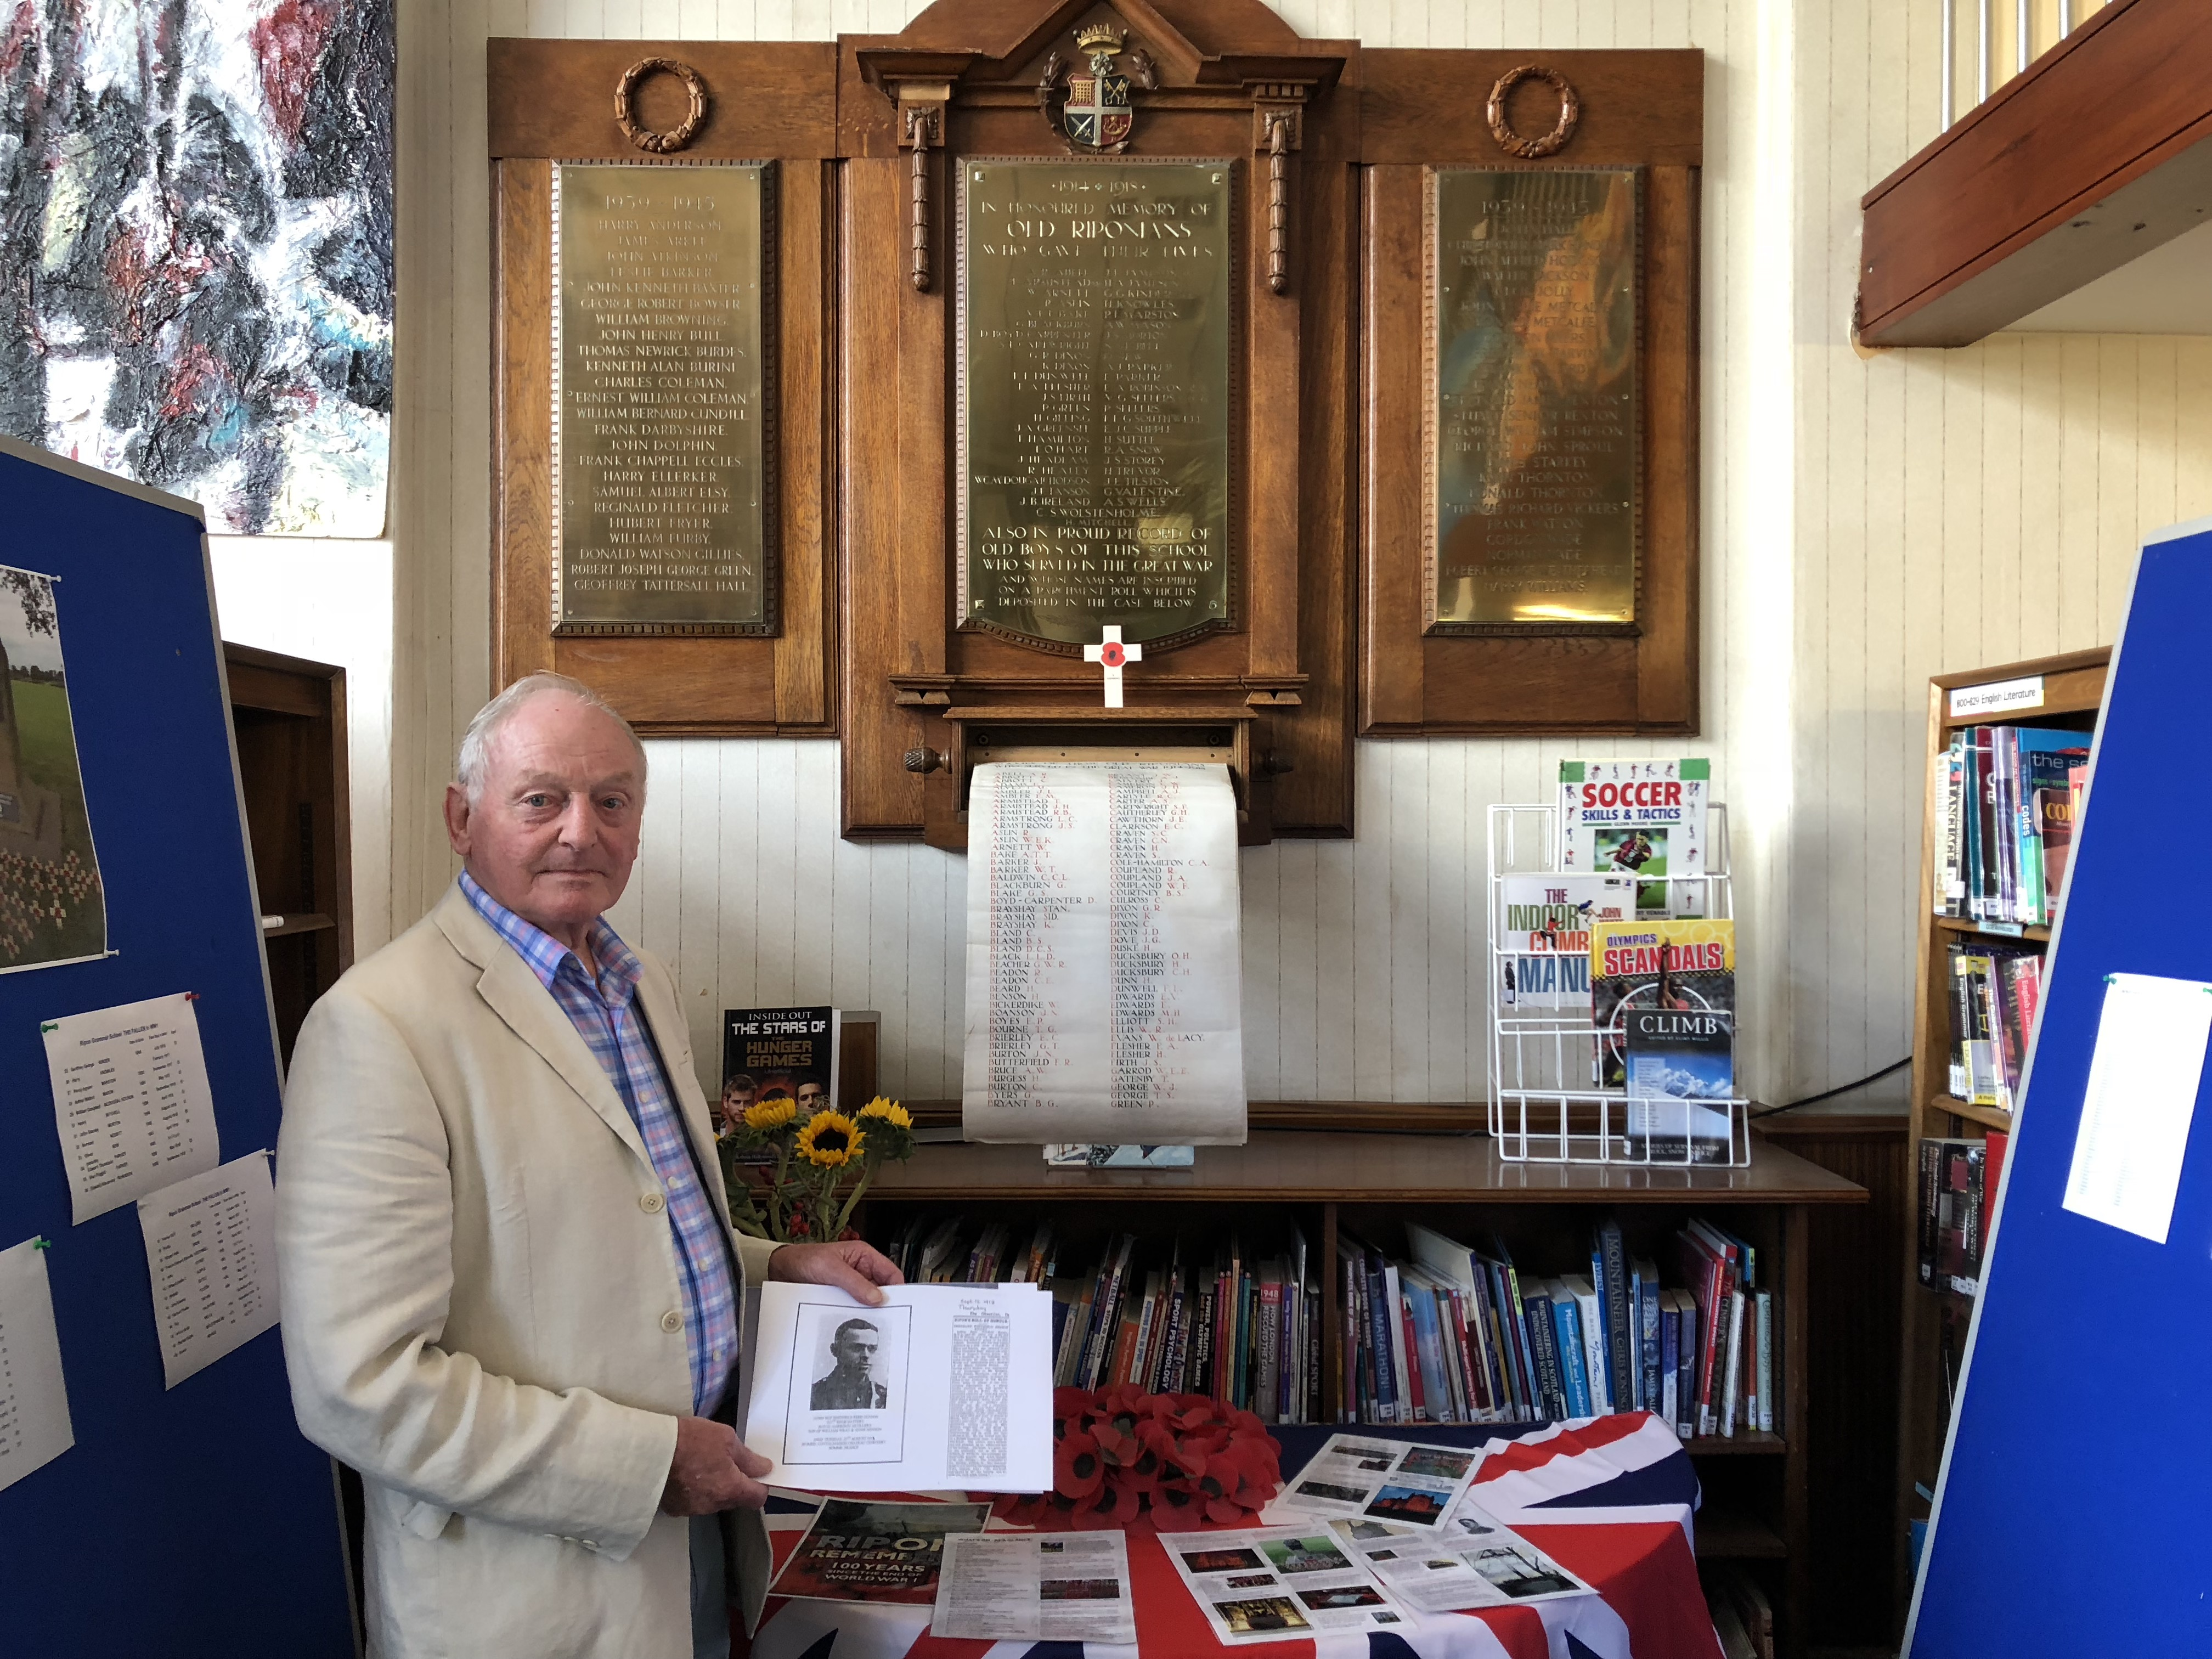 Peter Benson in front of the Roll of Honour